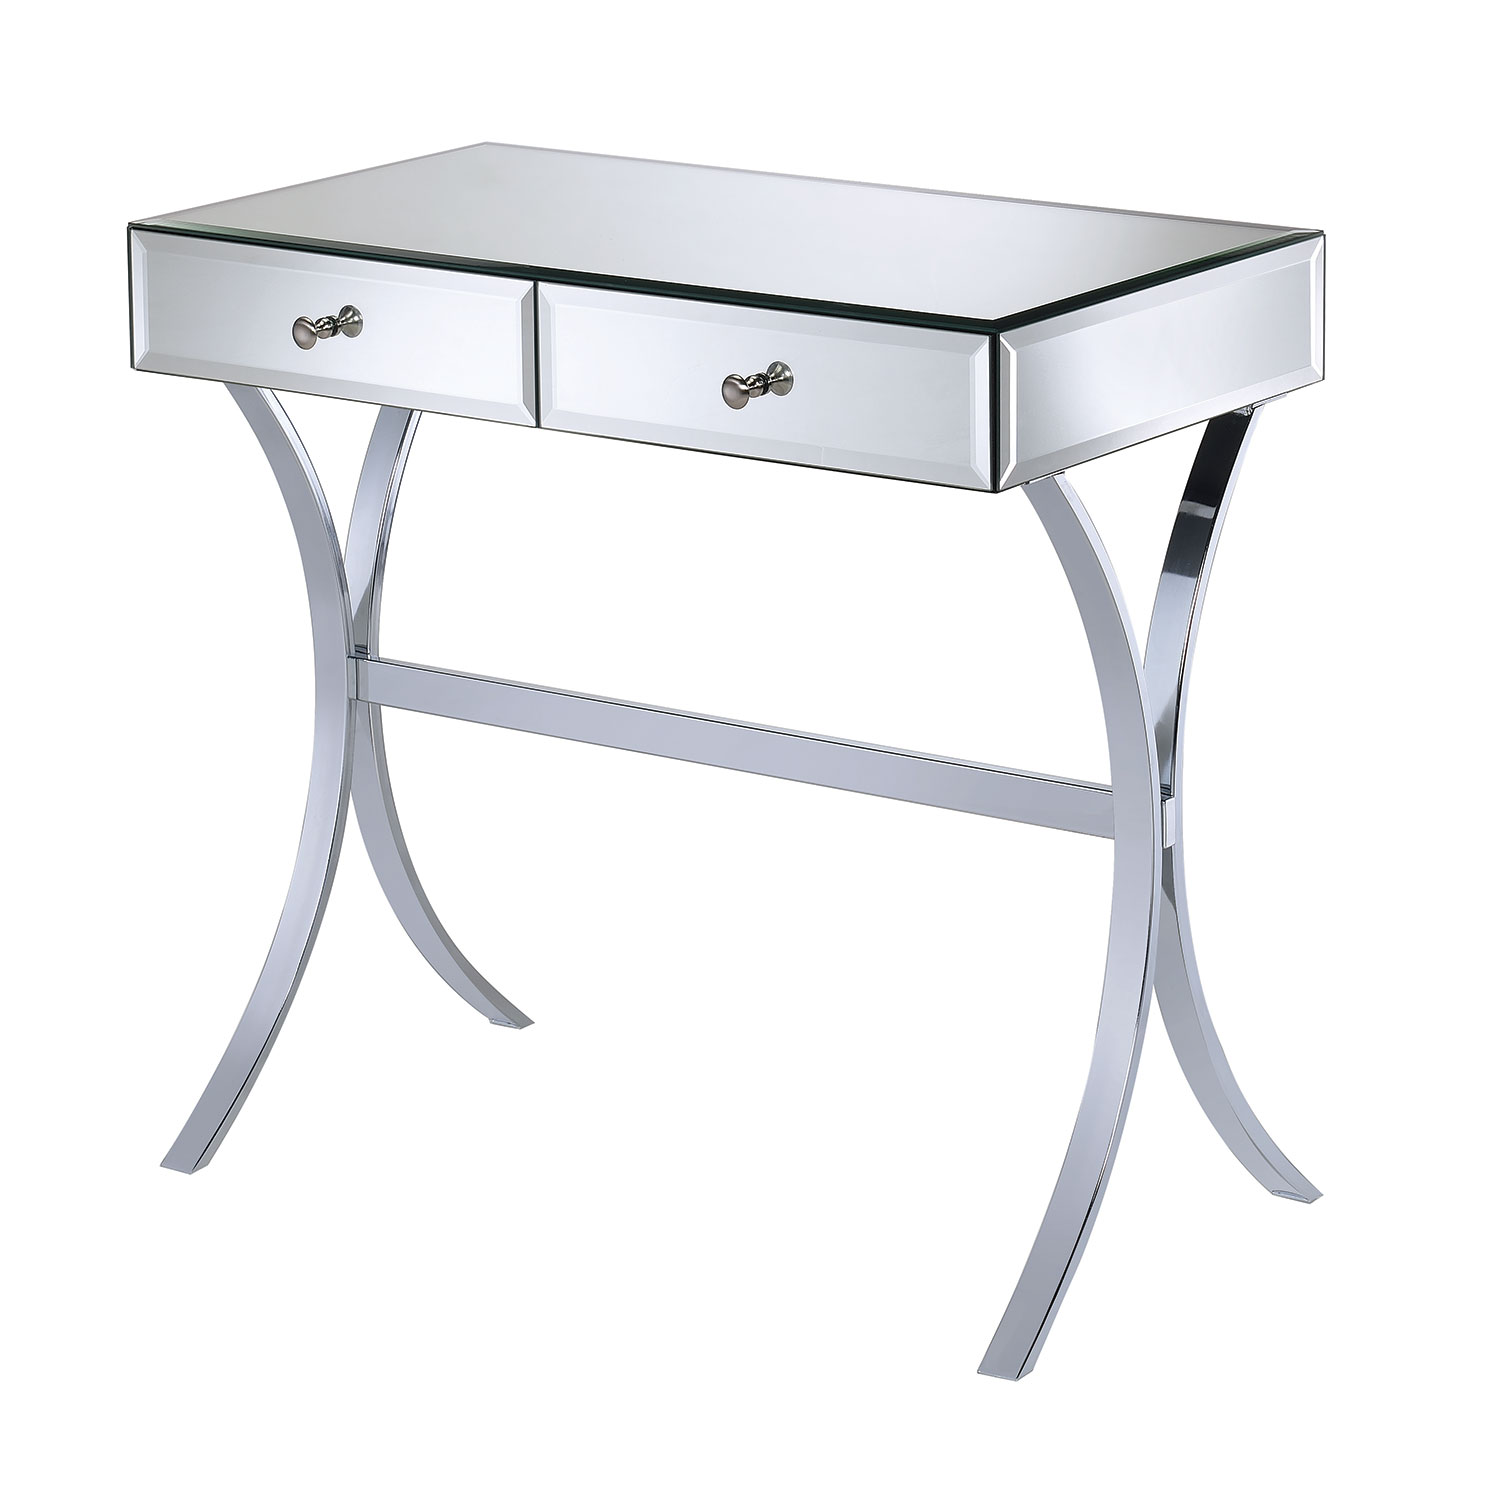 coaster accent tables mirror console table dunk bright products color coas metal target dining room french braid quilt pattern runner chairs from pier one imports replica retro